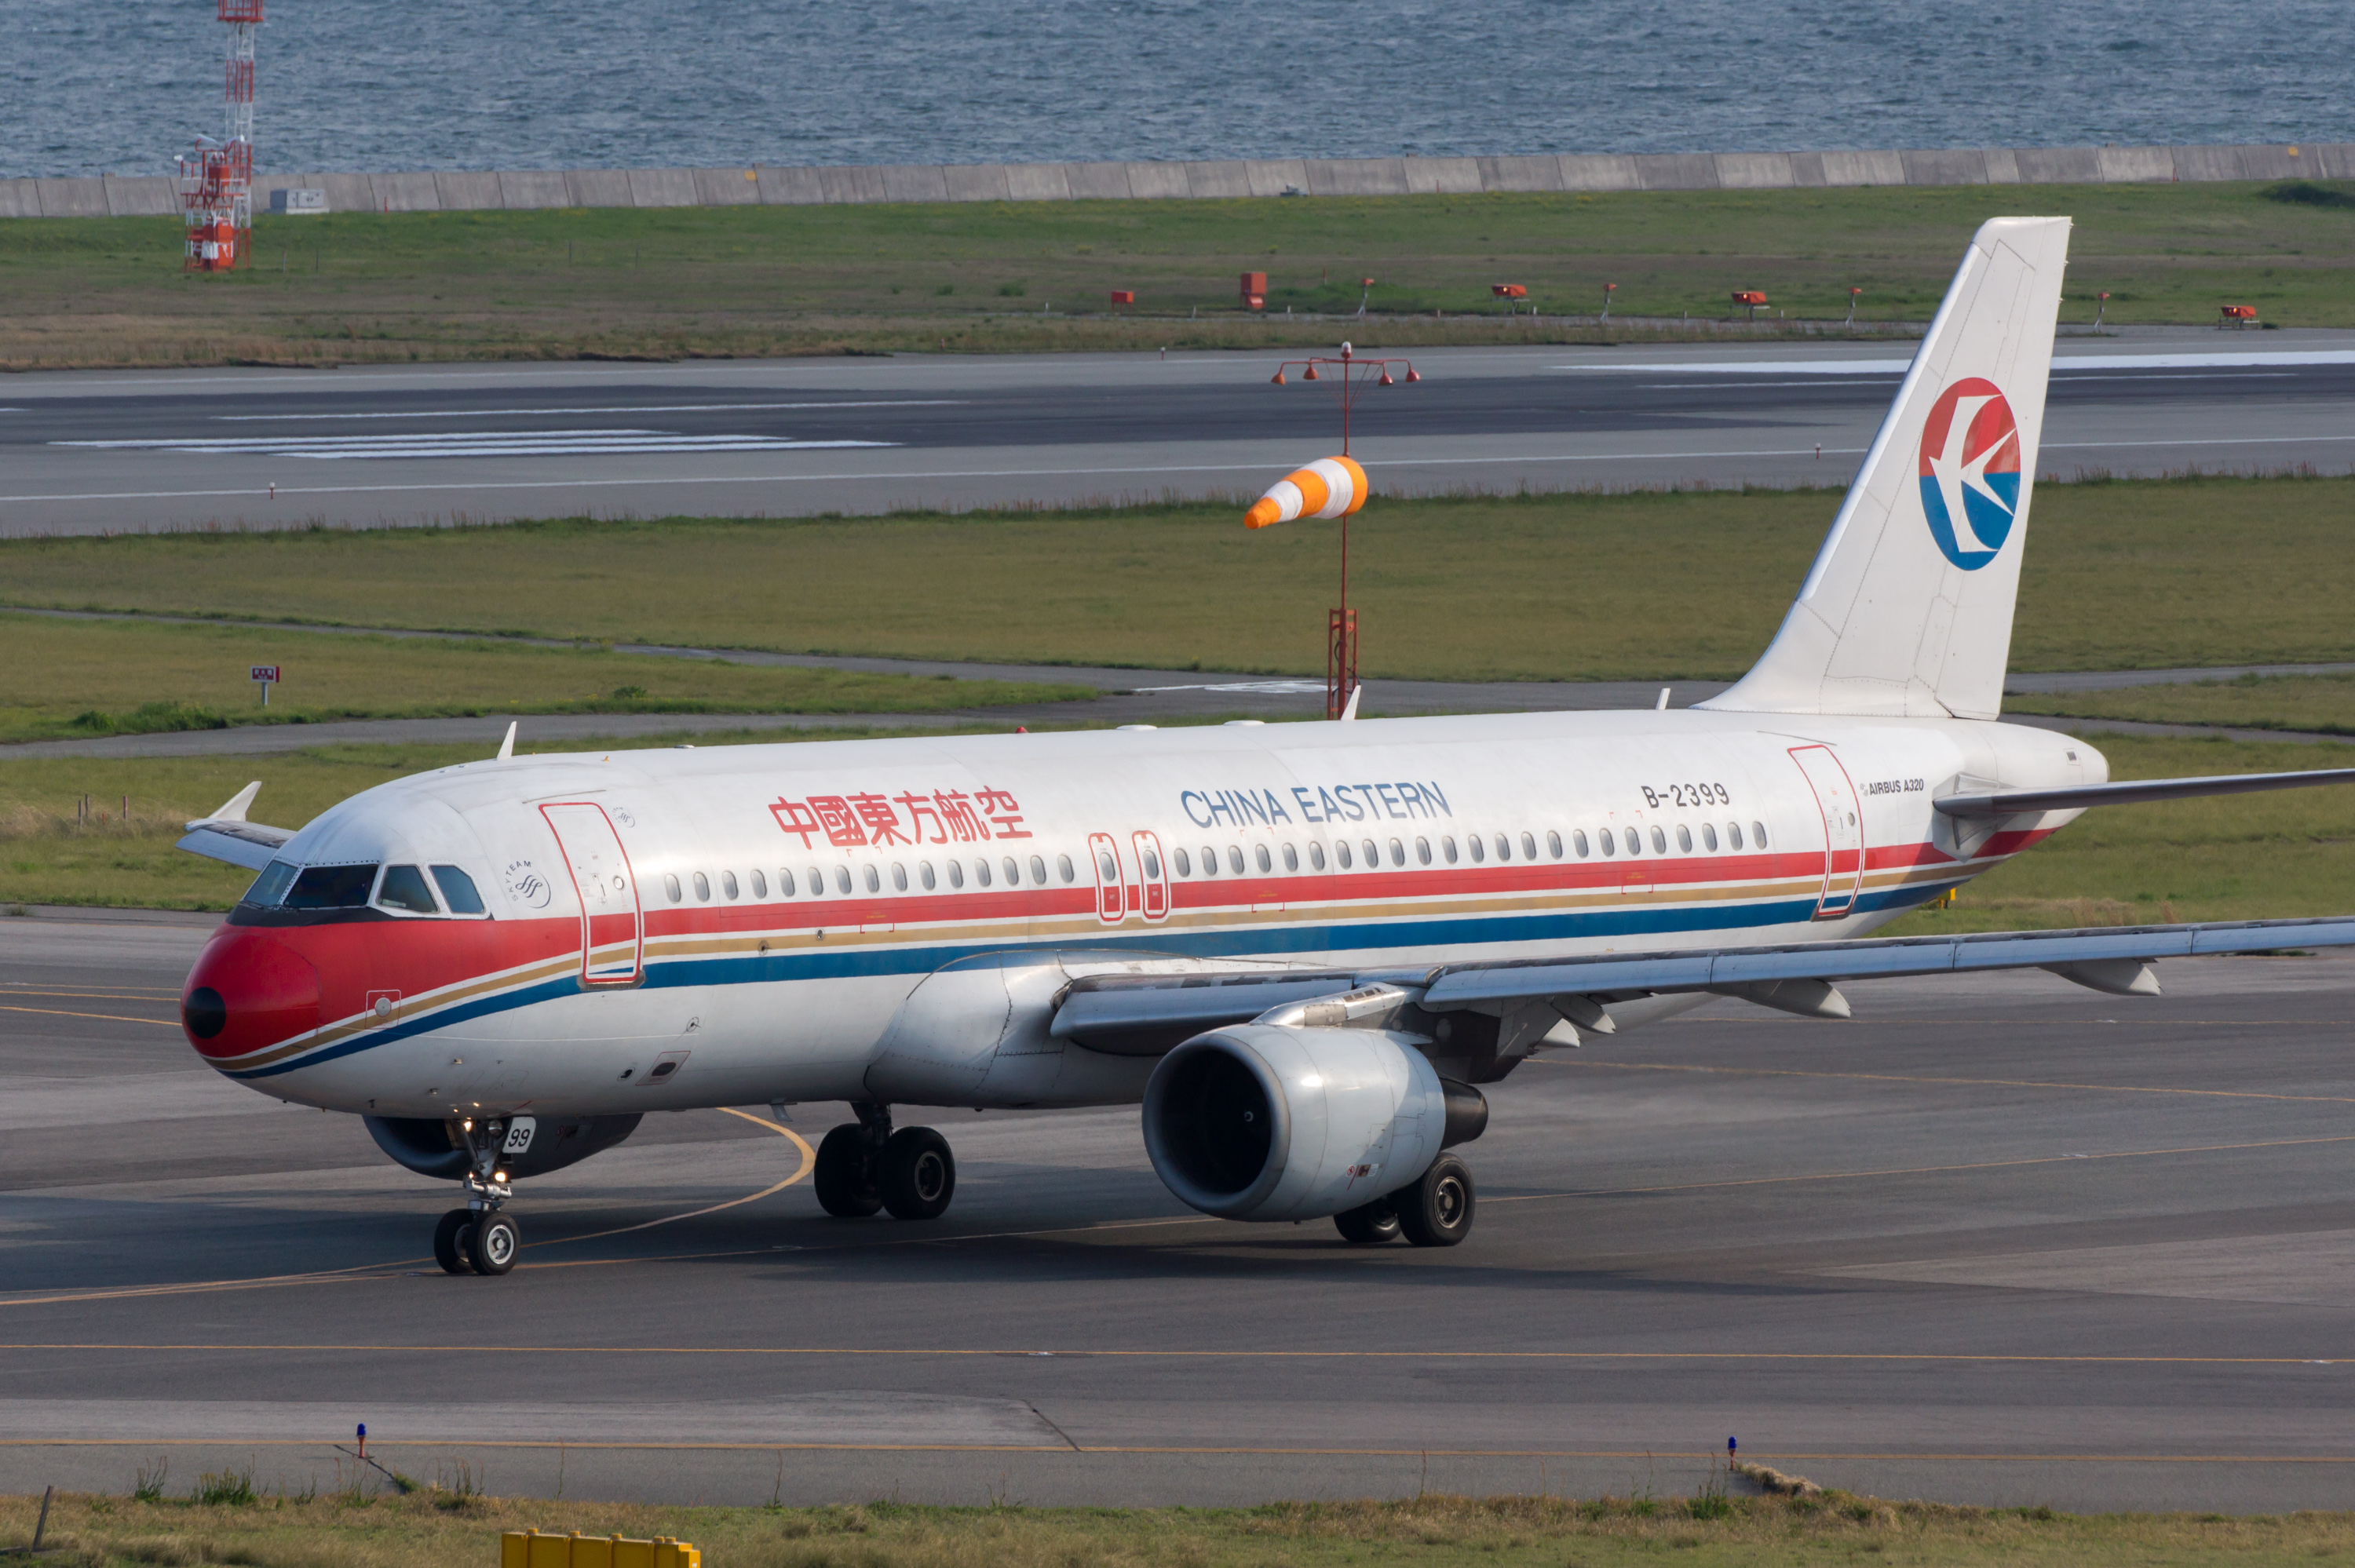 File:China Eastern Airlines, MU278, Airbus A320-214, B-2399